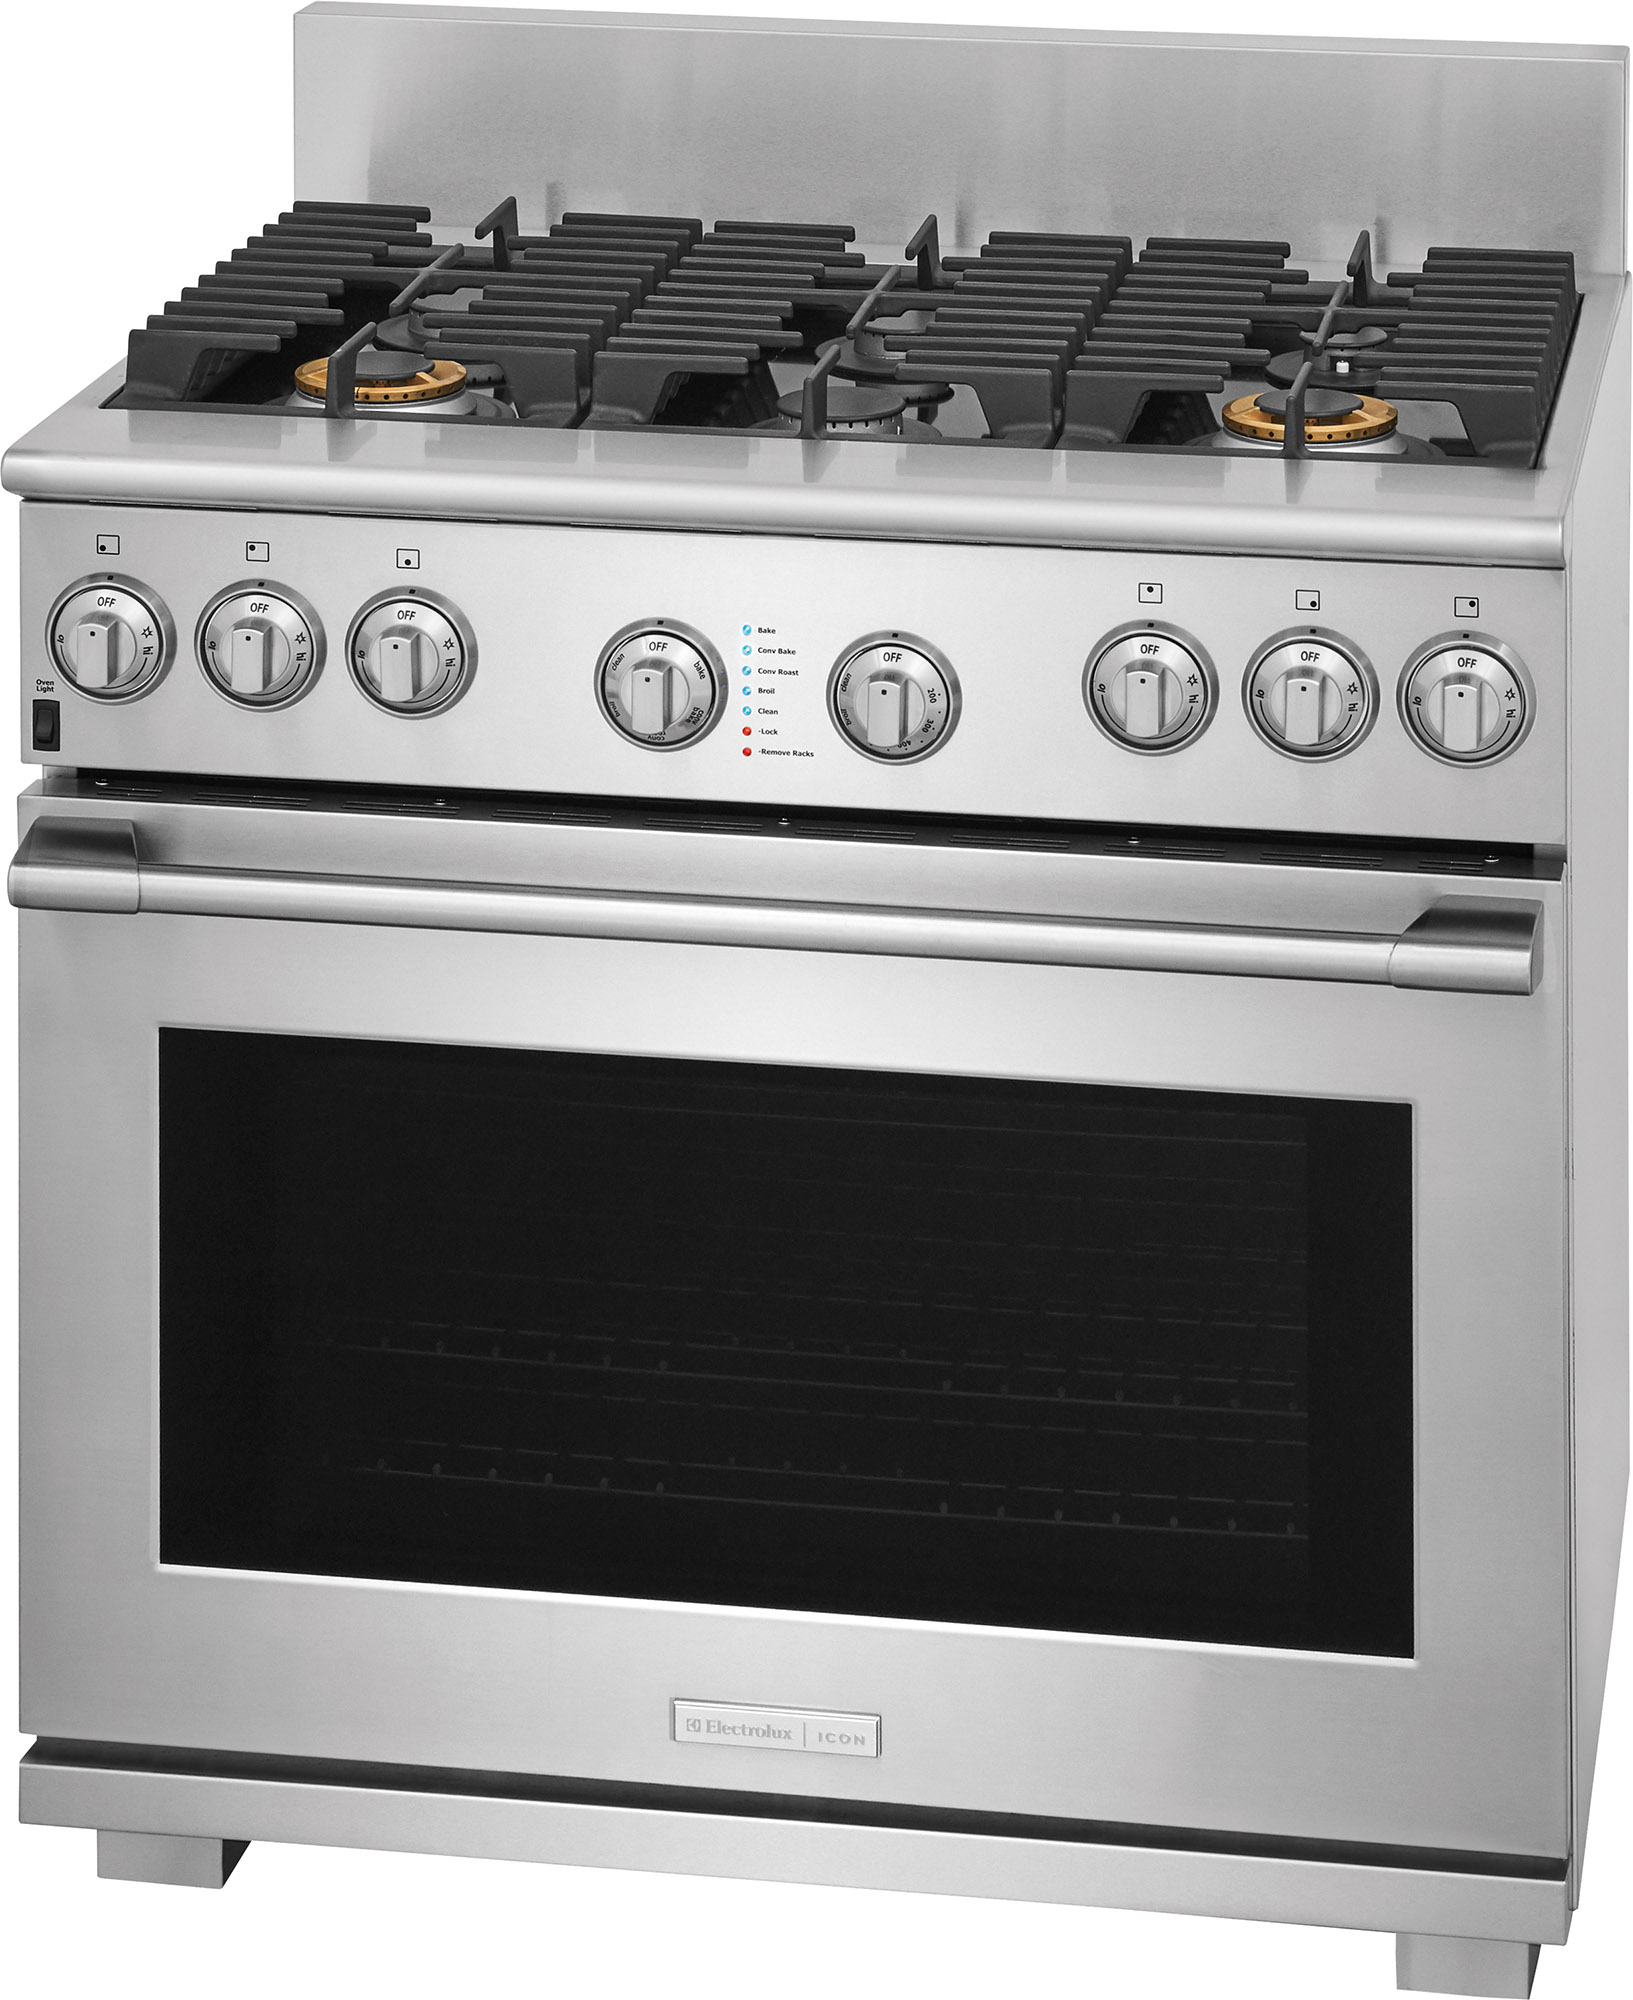 Electrolux Icon Professional Series 36 Free Standing Dual Fuel Jenn Air Electric Stove Wiring Diagram Range Stainless Steel